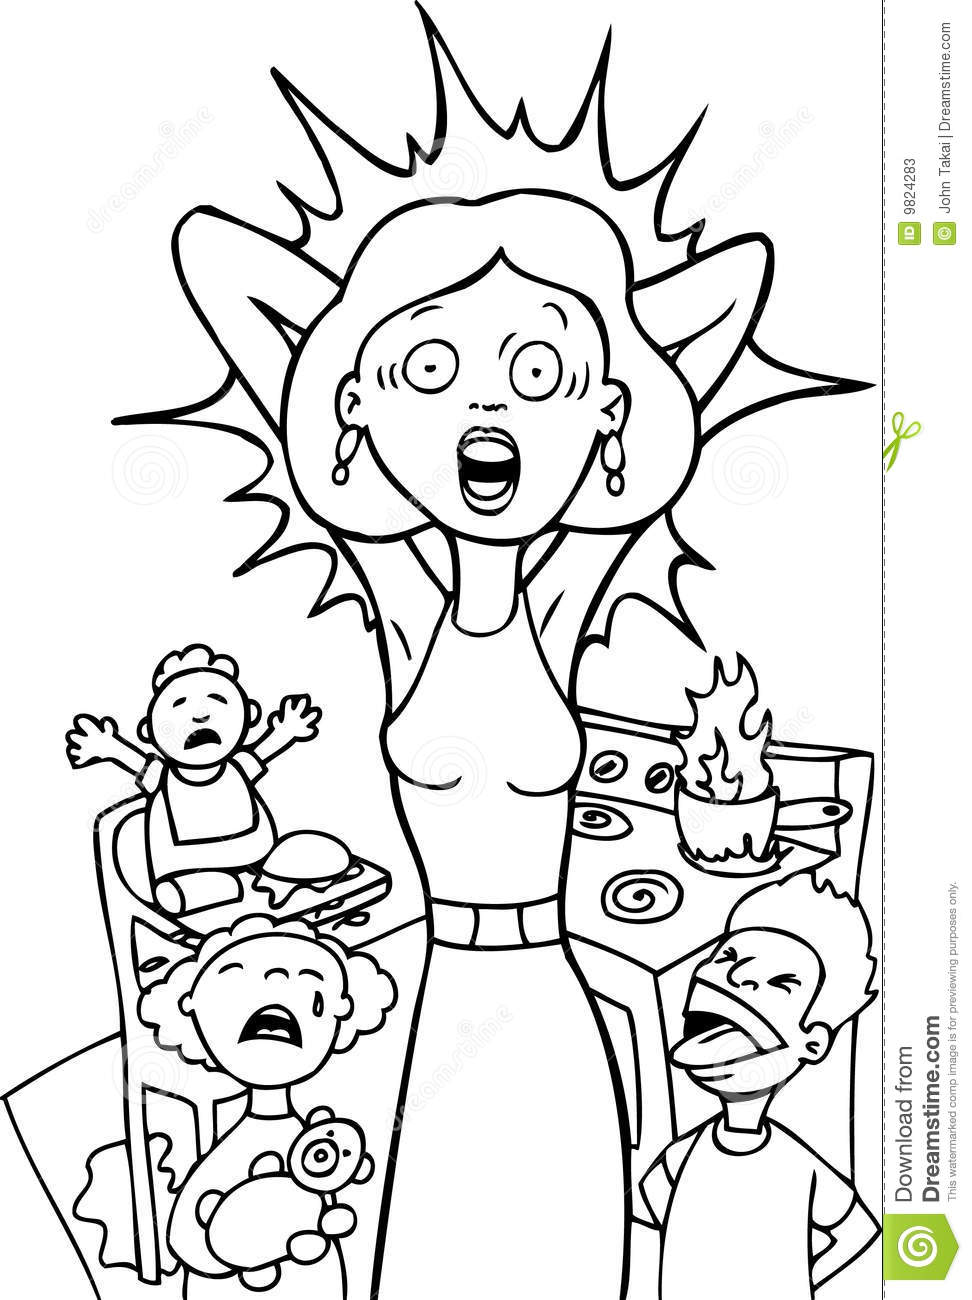 Stressed Mom At Home - Black And White Stock Vector ...